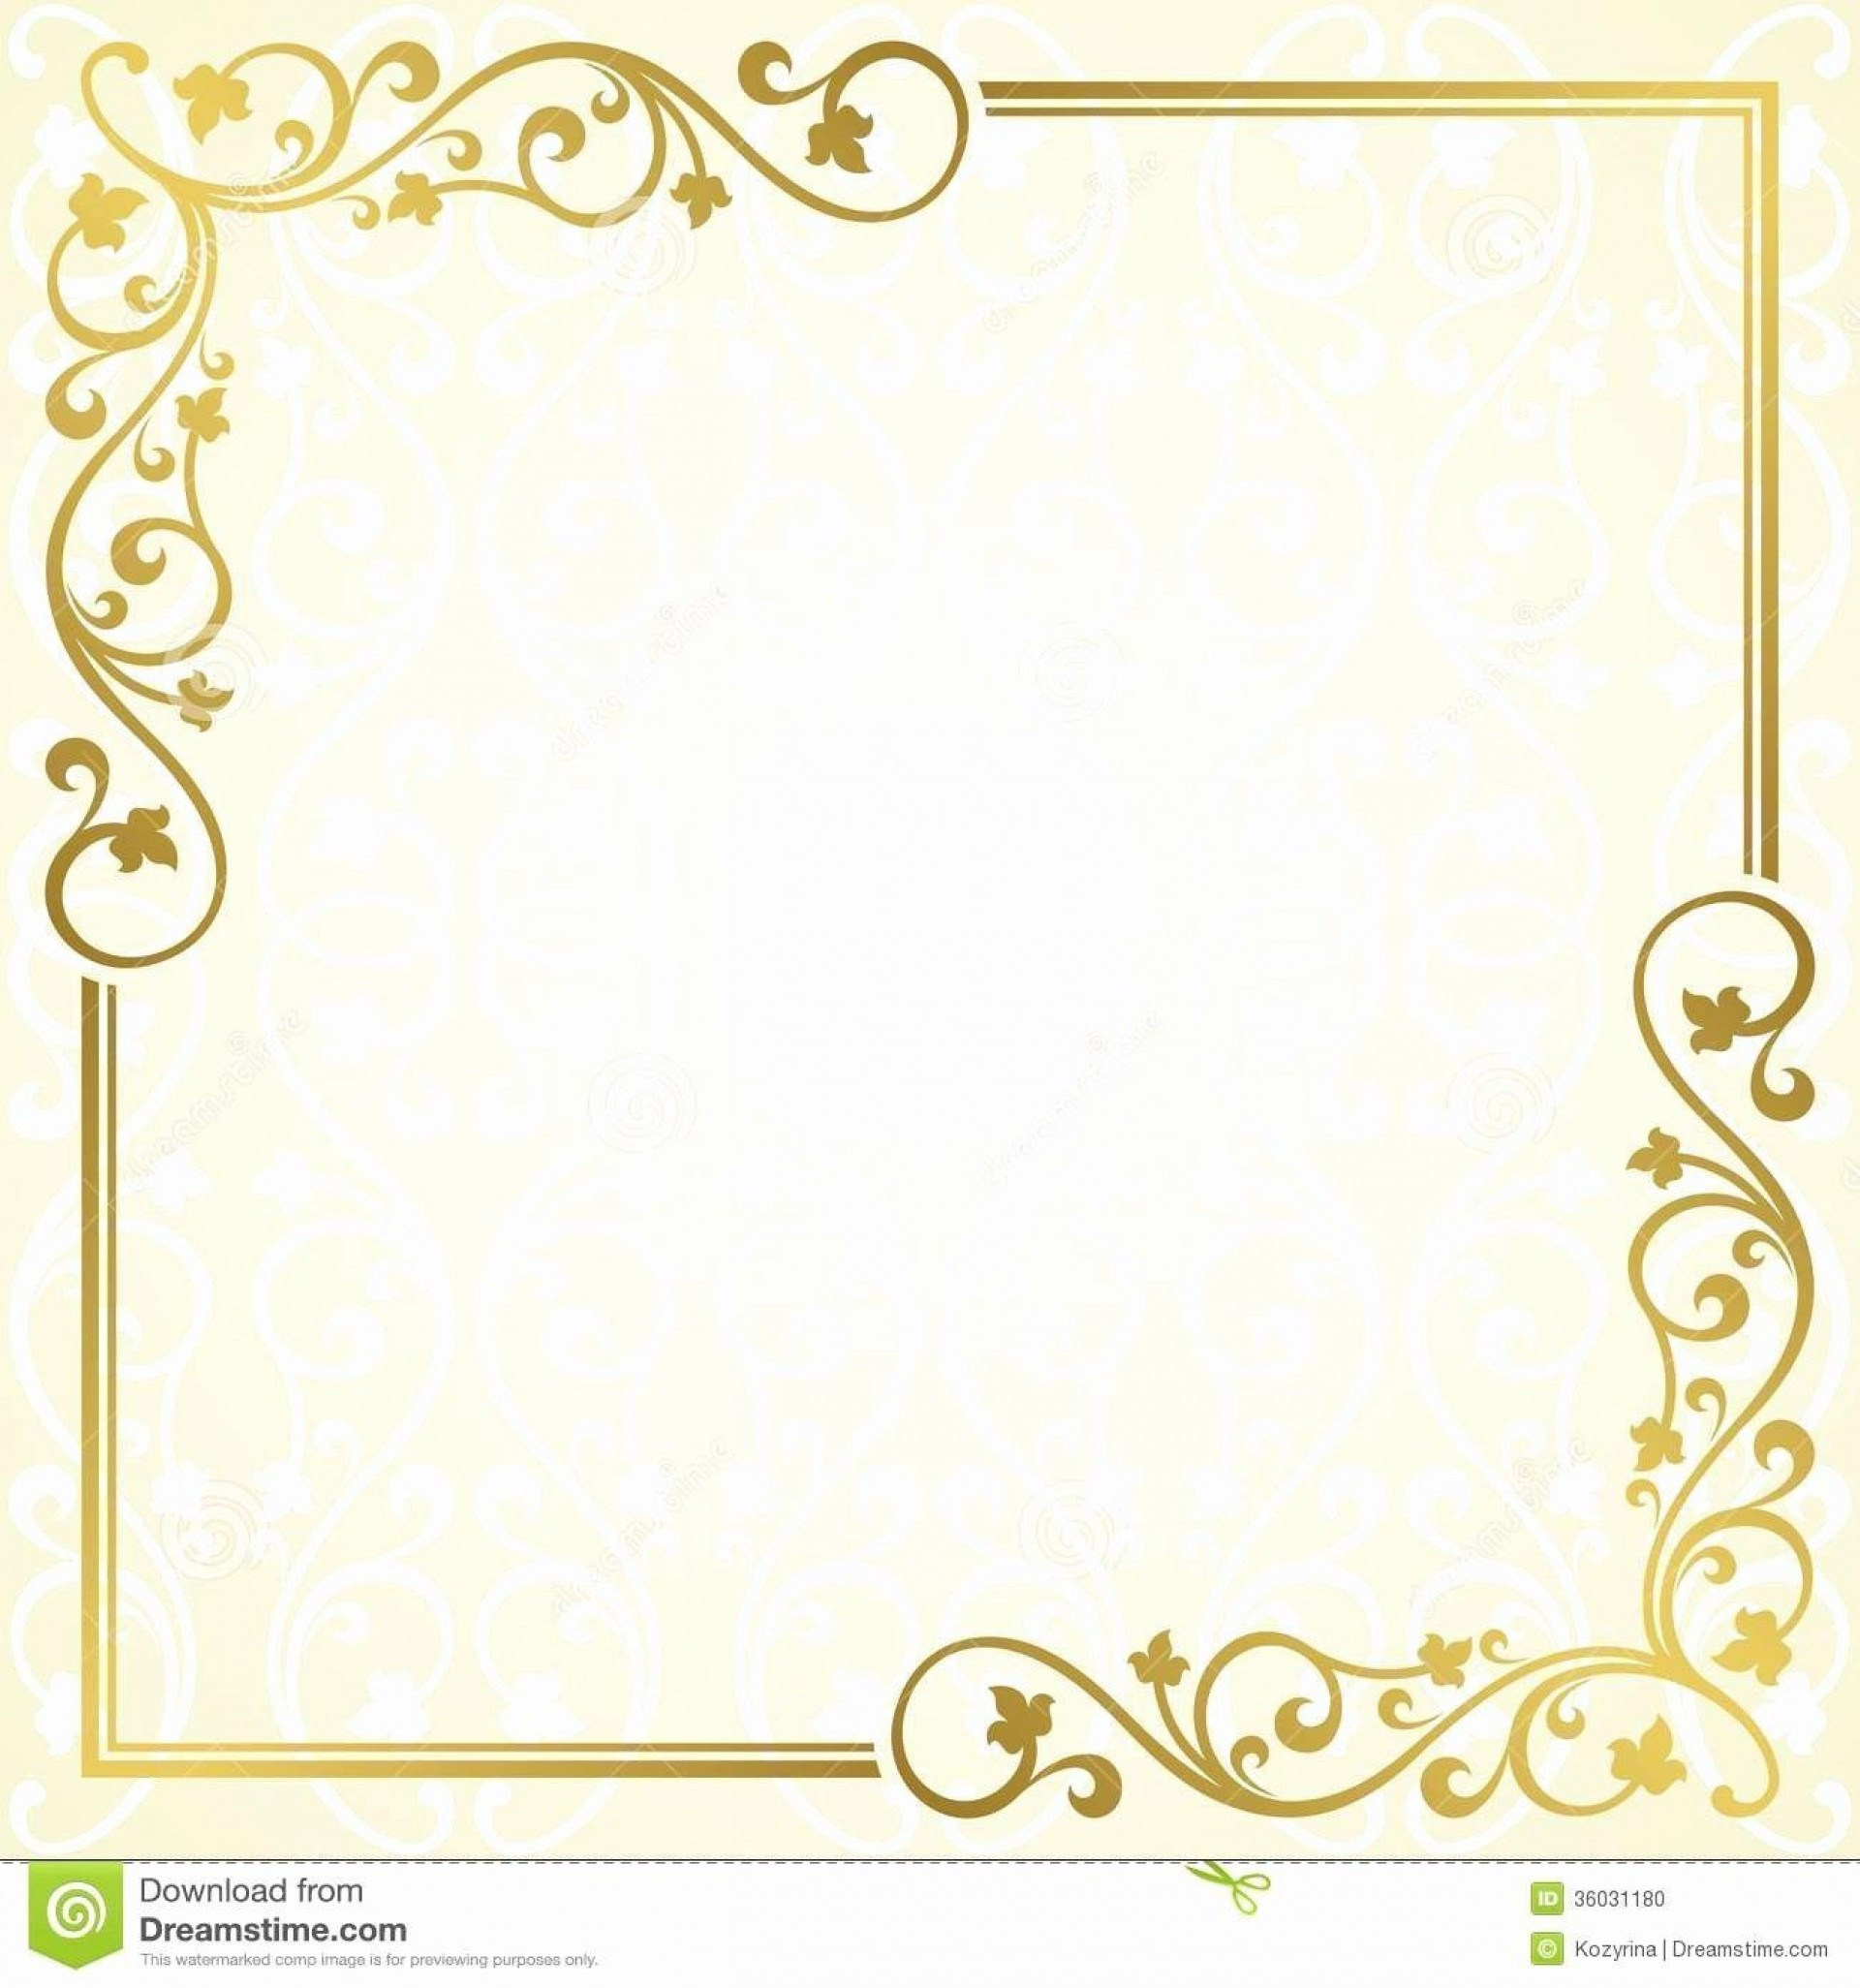 004 Remarkable Free Download Invitation Card Template Design  Templates Indian Wedding Software Png1920